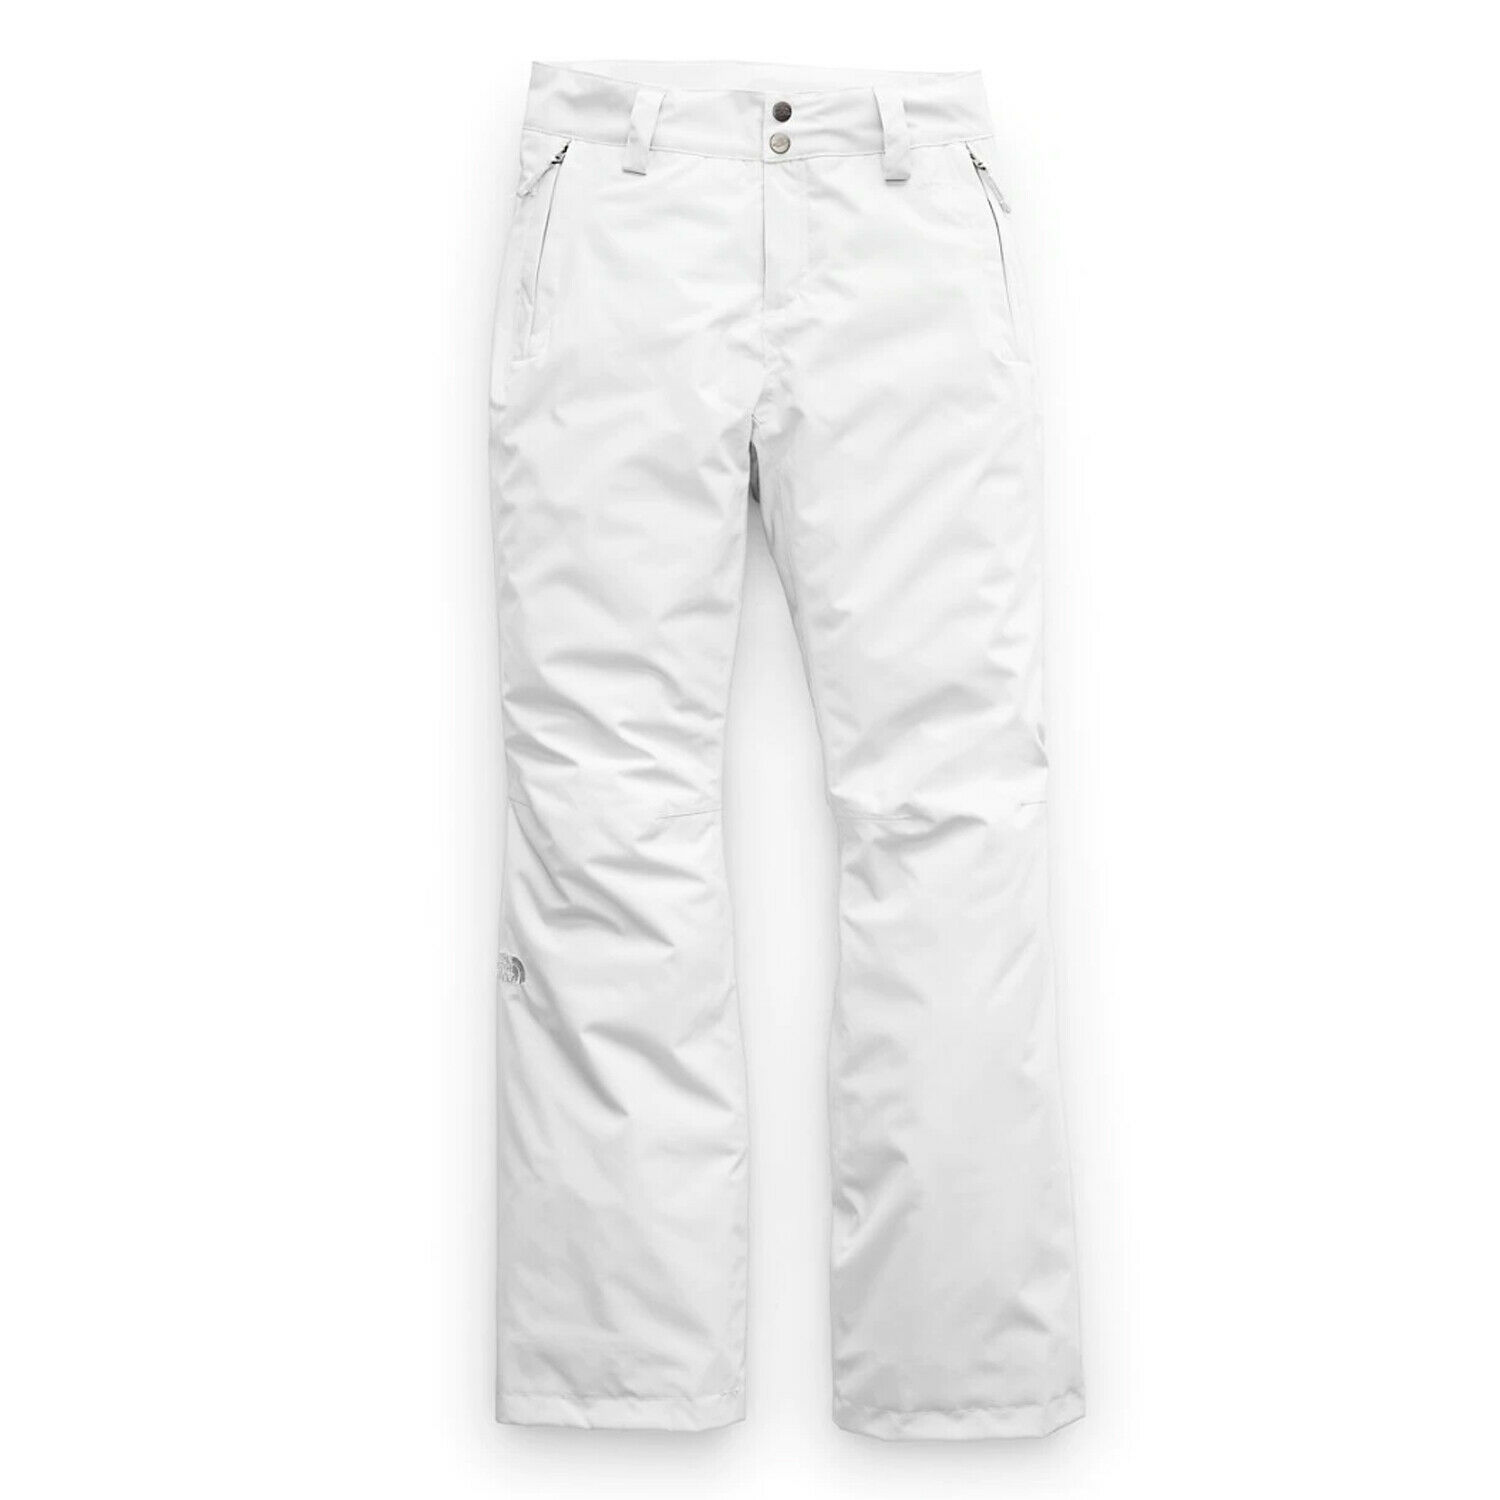 THE NORTH FACE Womens Snow - Sally  Pant - TNF White  hot sale online